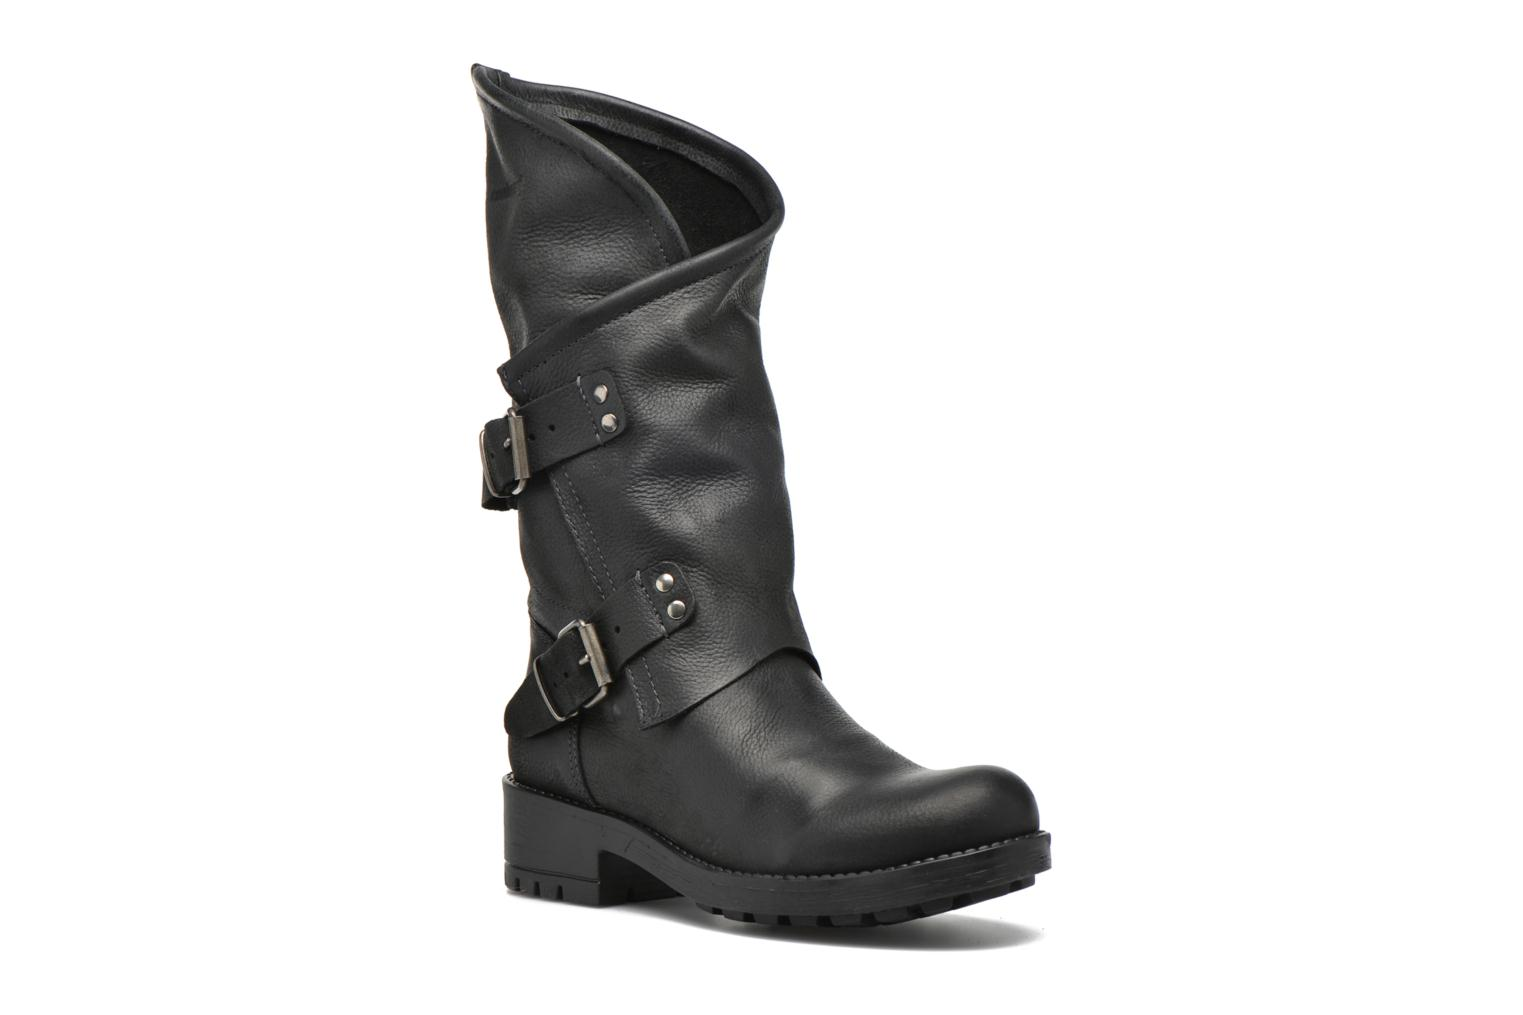 Marques Chaussure femme Coolway femme Alida Nubuck